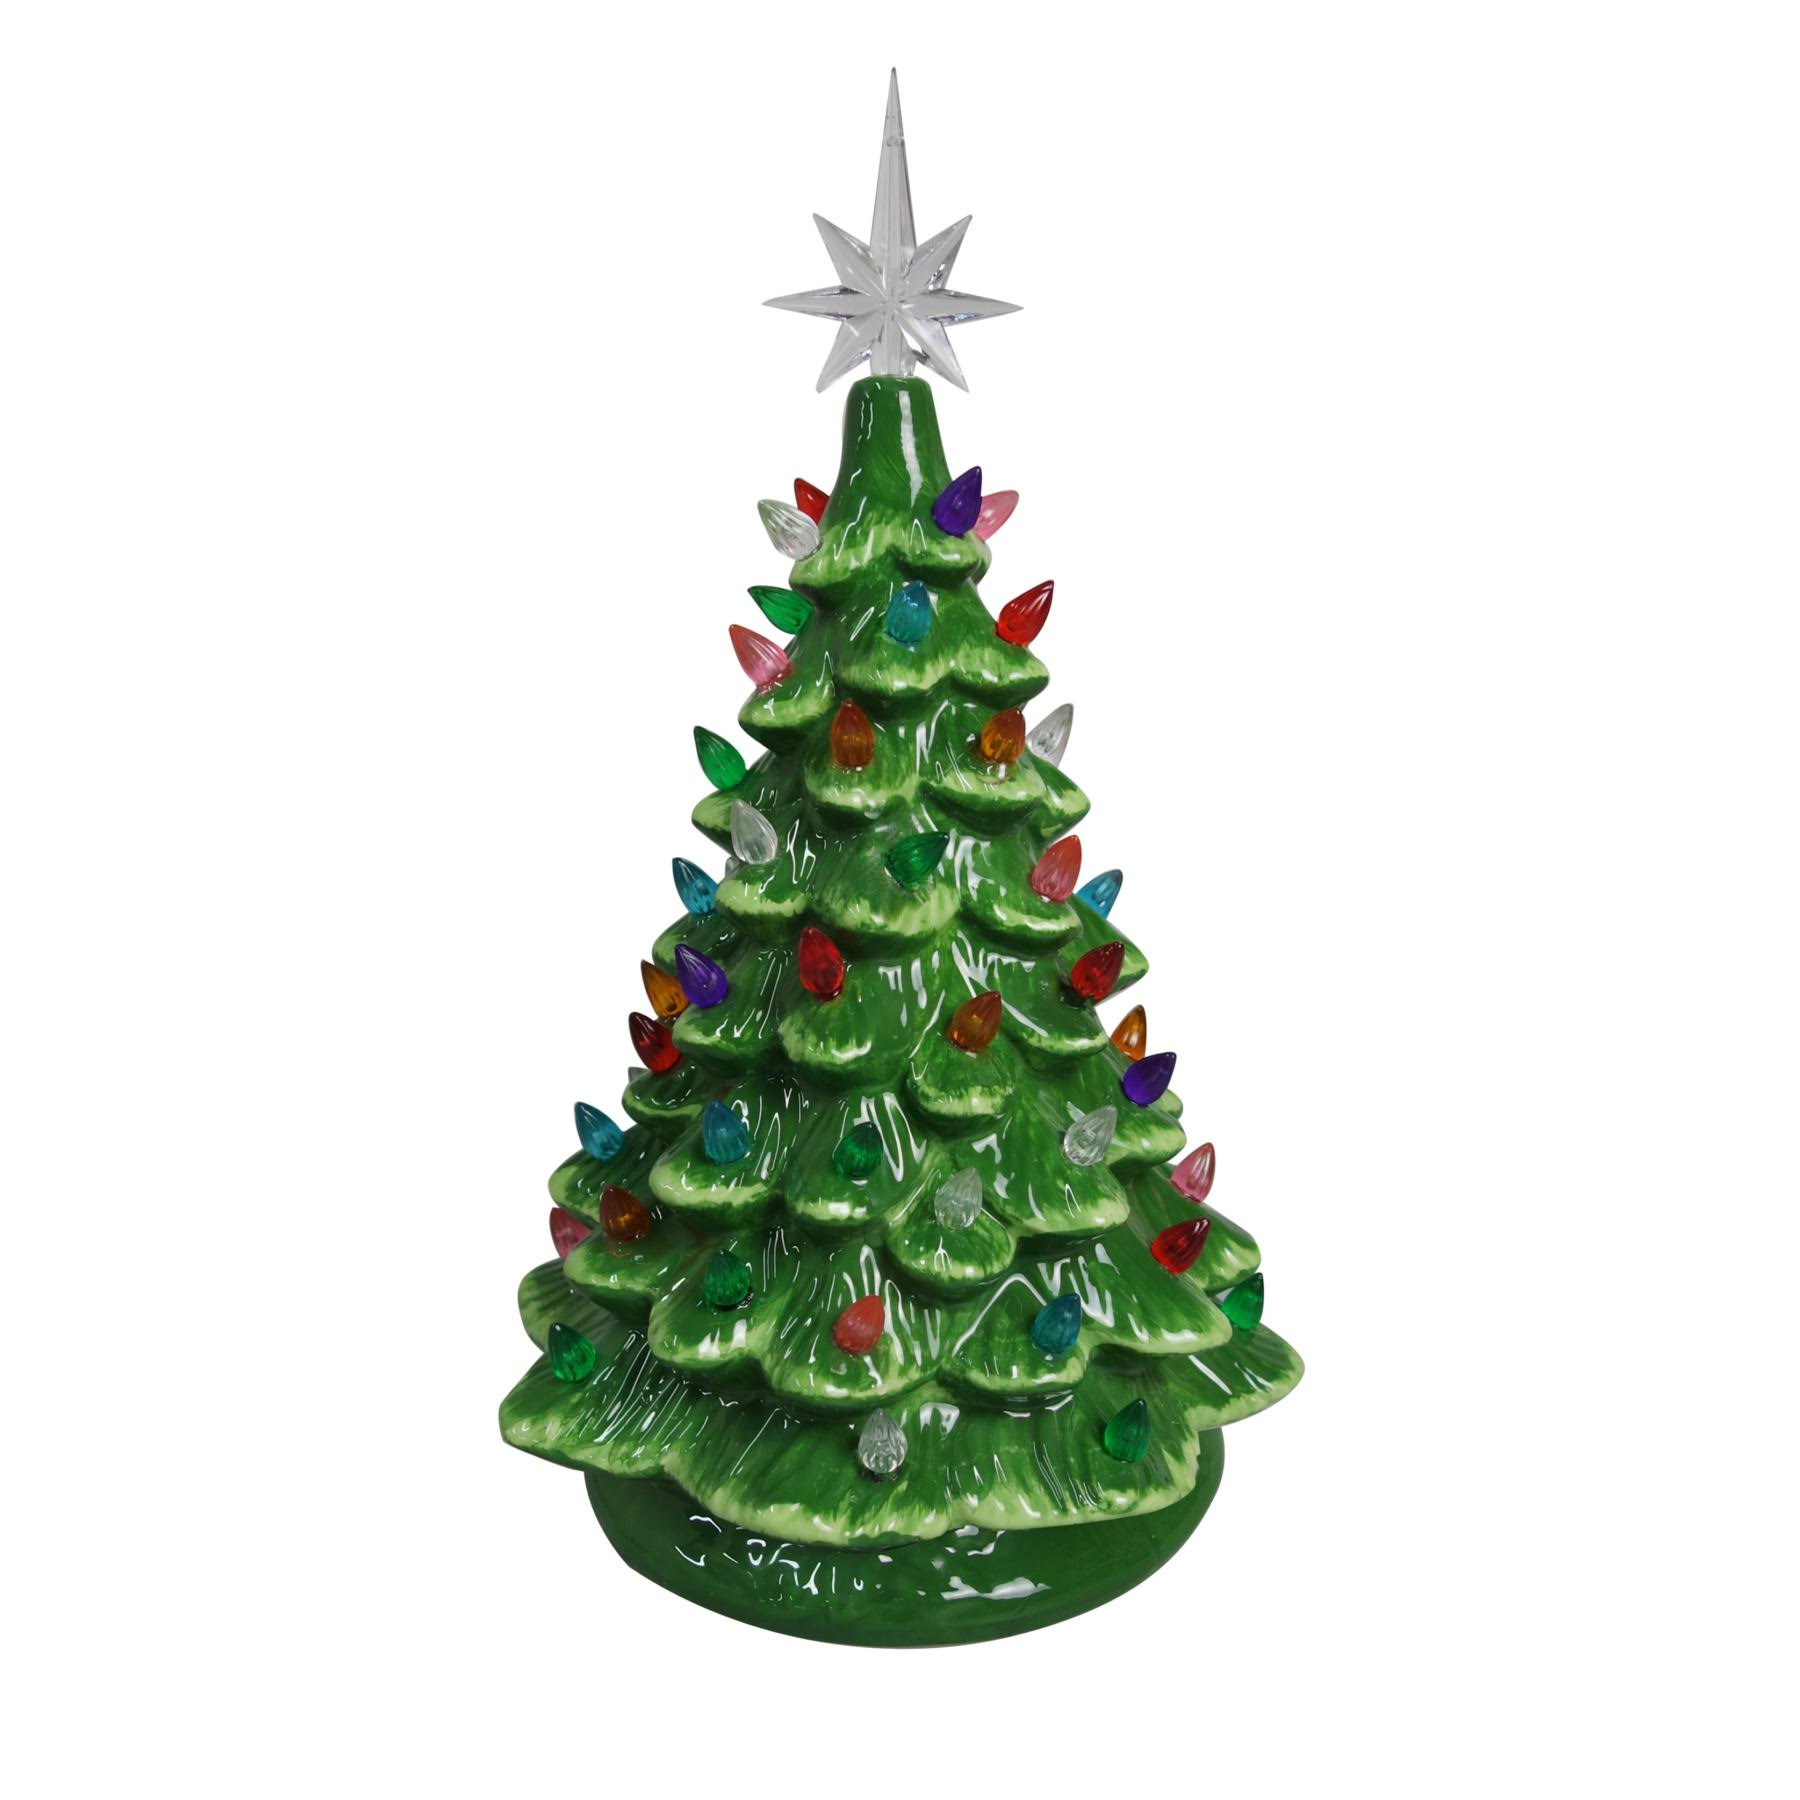 "Christmas Is Forever Lighted Tabletop Ceramic Tree - 14.5"", Green Tree and Multi Color Lights"